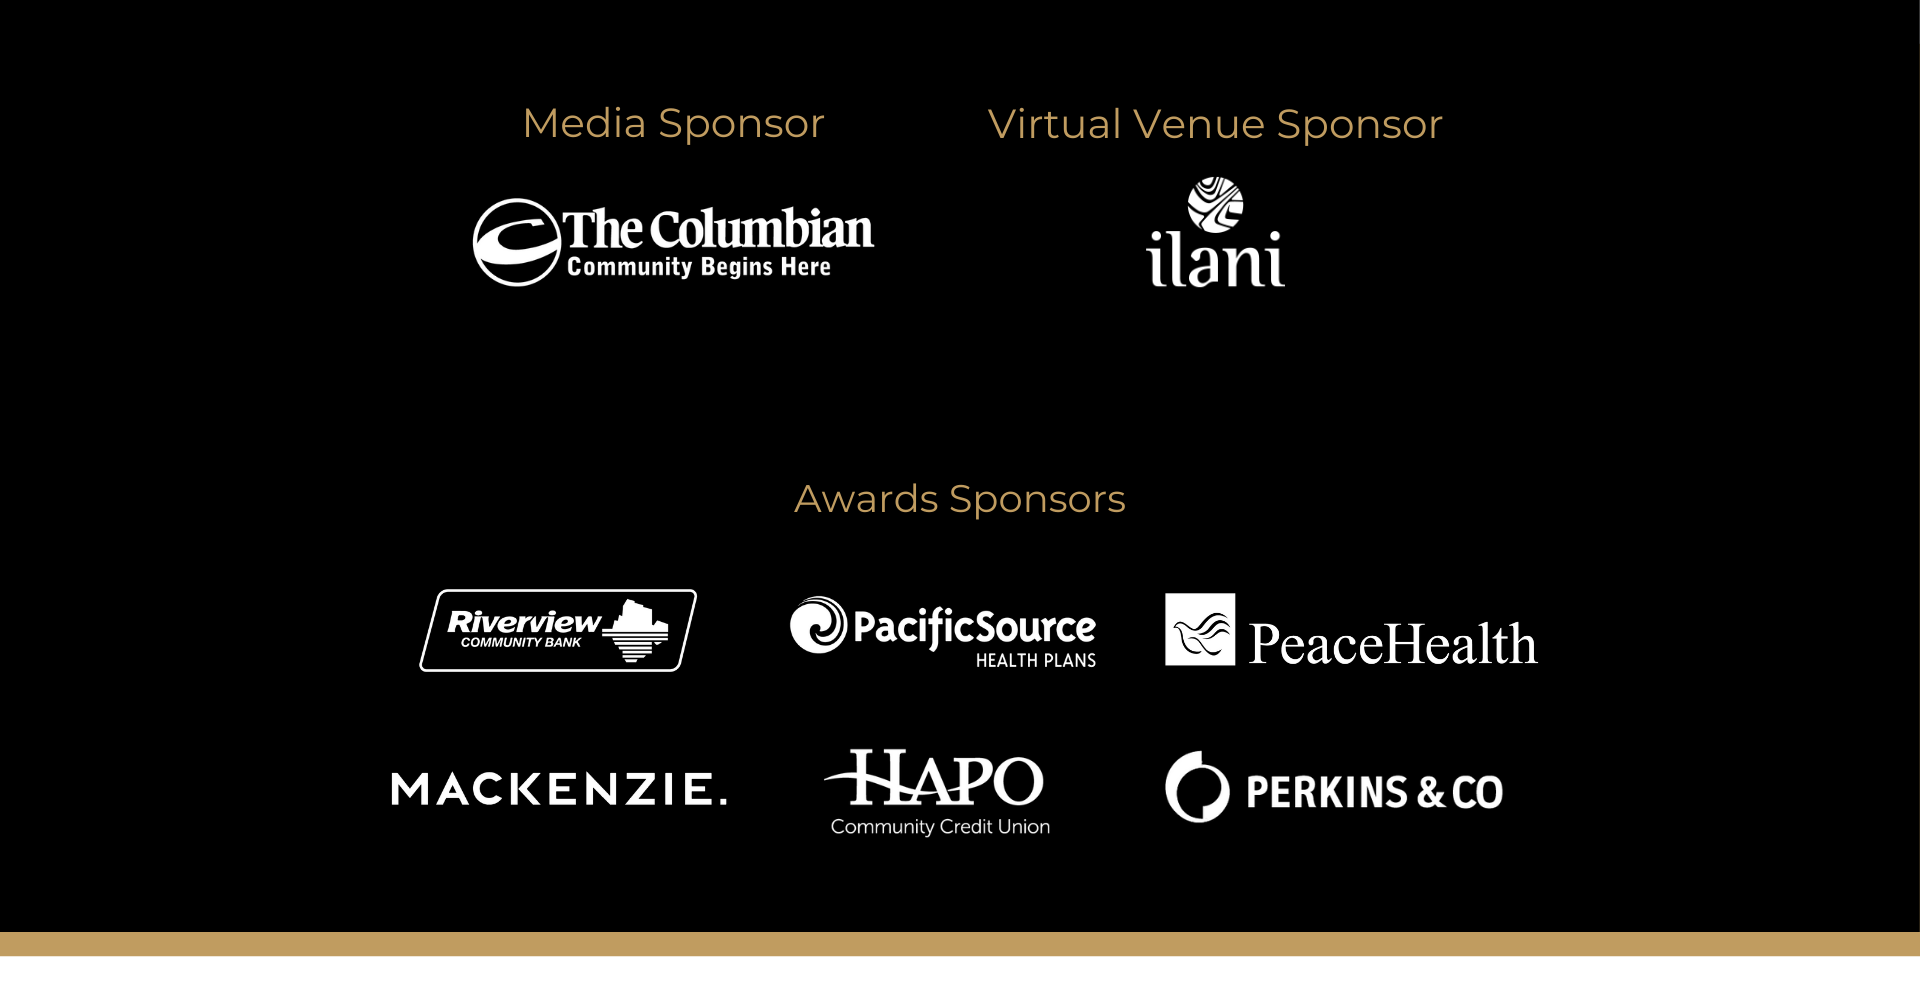 sponsors bla media virtual venue awardss